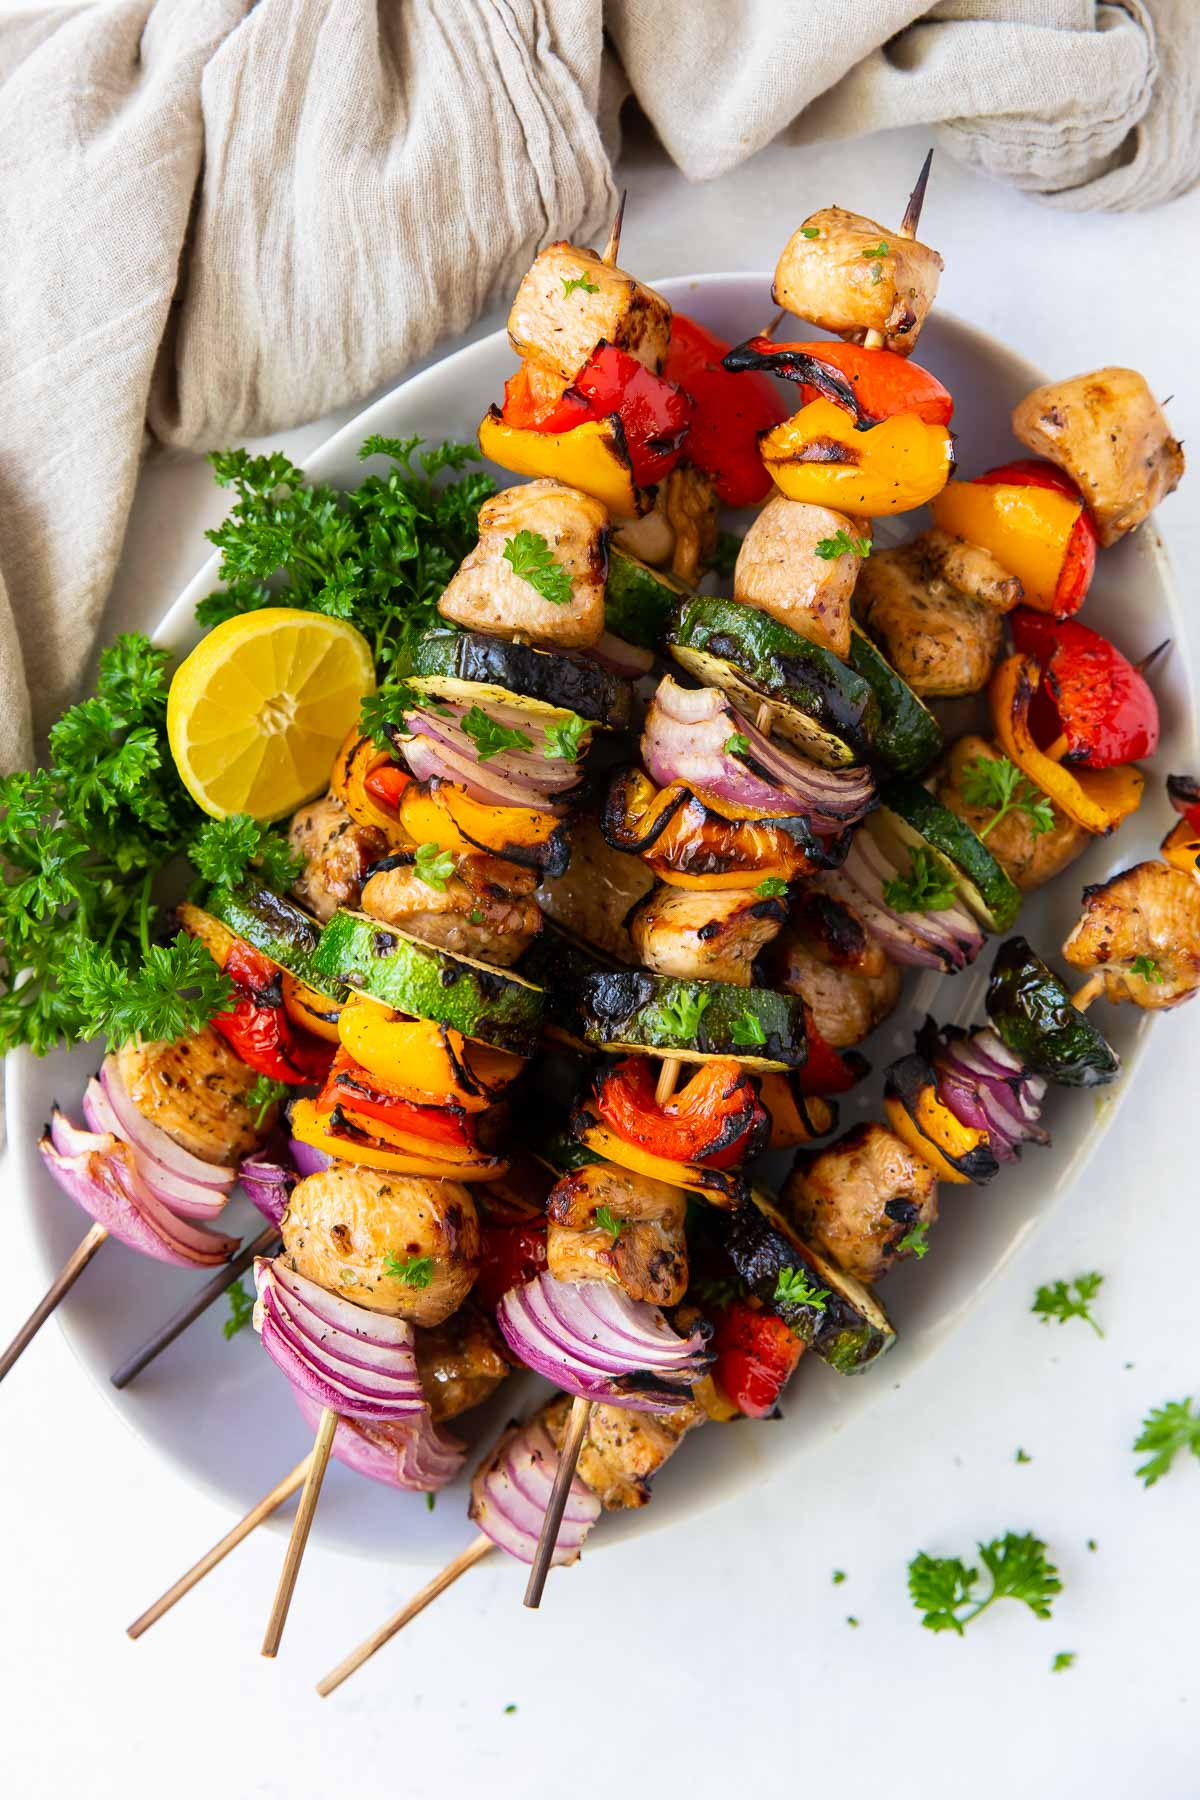 grilled kabobs with chicken and vegetables stacked on a plate with lemon and parsley garnish